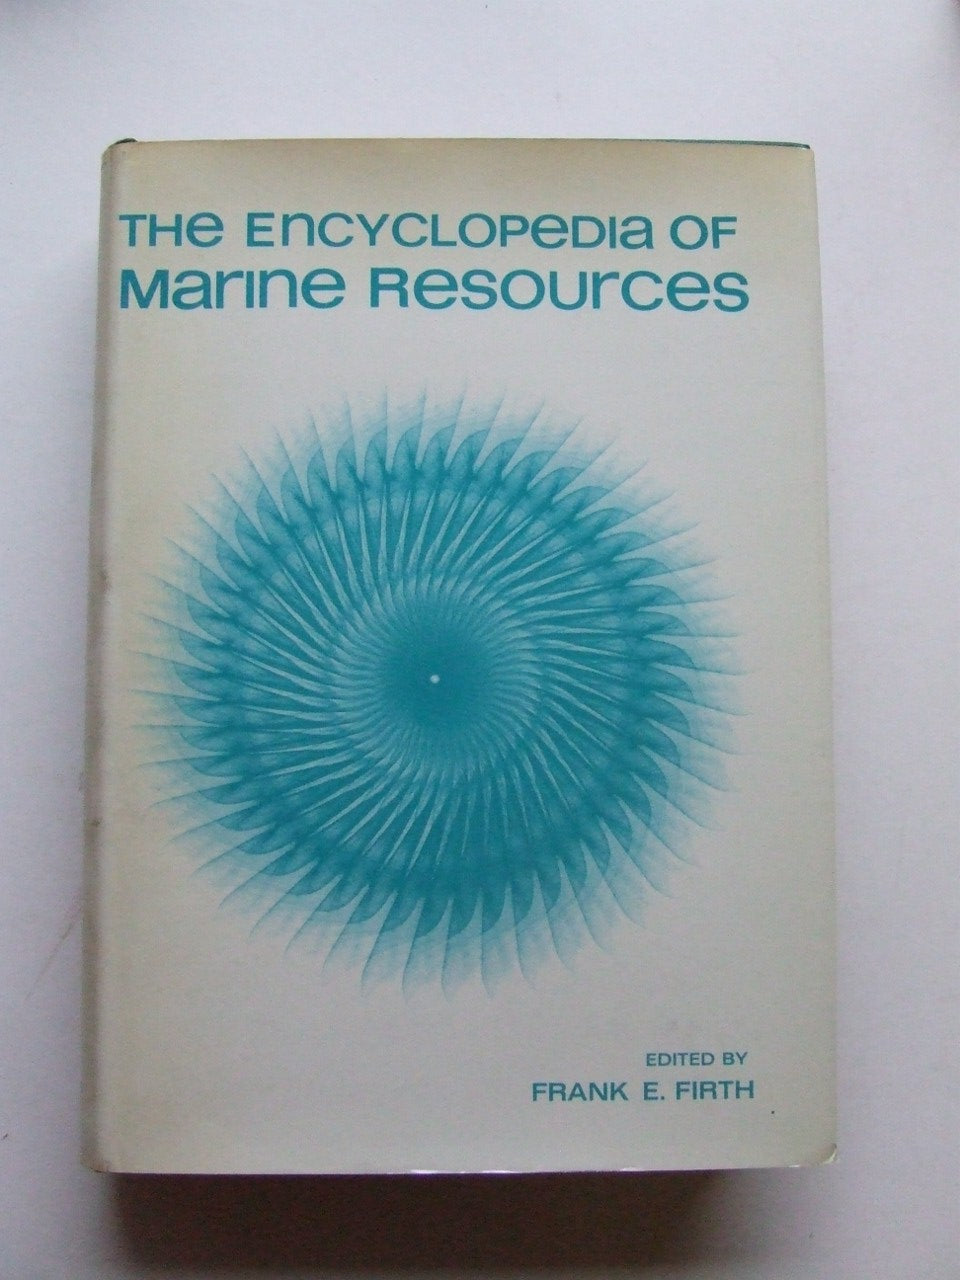 The Encyclopedia of Marine Resources